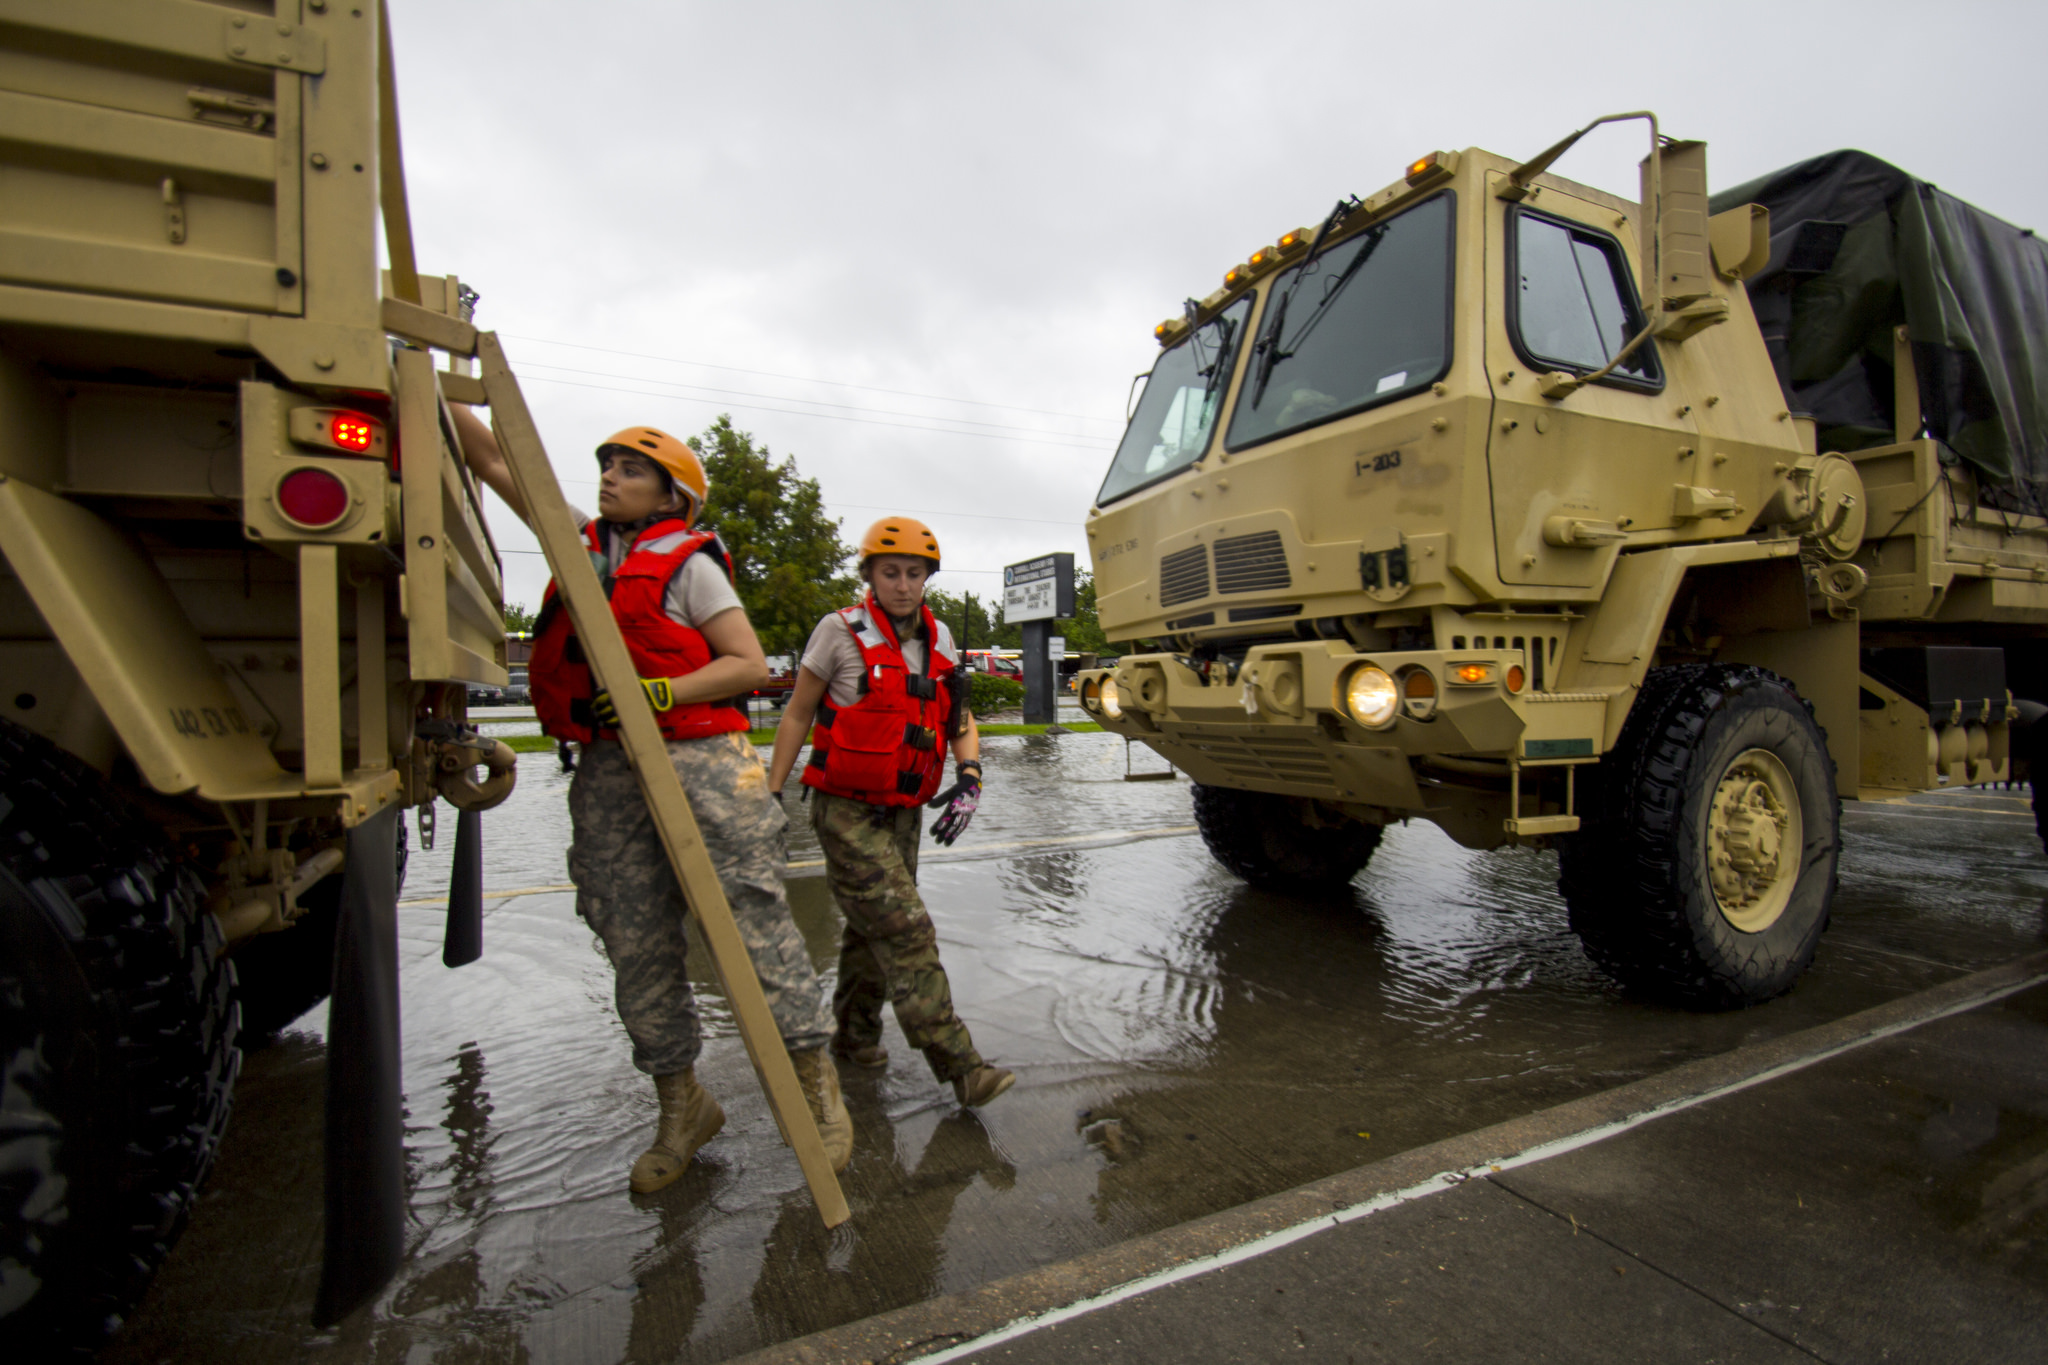 Texas National Guard soldiers respond to the aftermath of Hurricane Harvey on Aug. 27, 2017. (Staff Sgt. Tim Pruitt/National Guard)